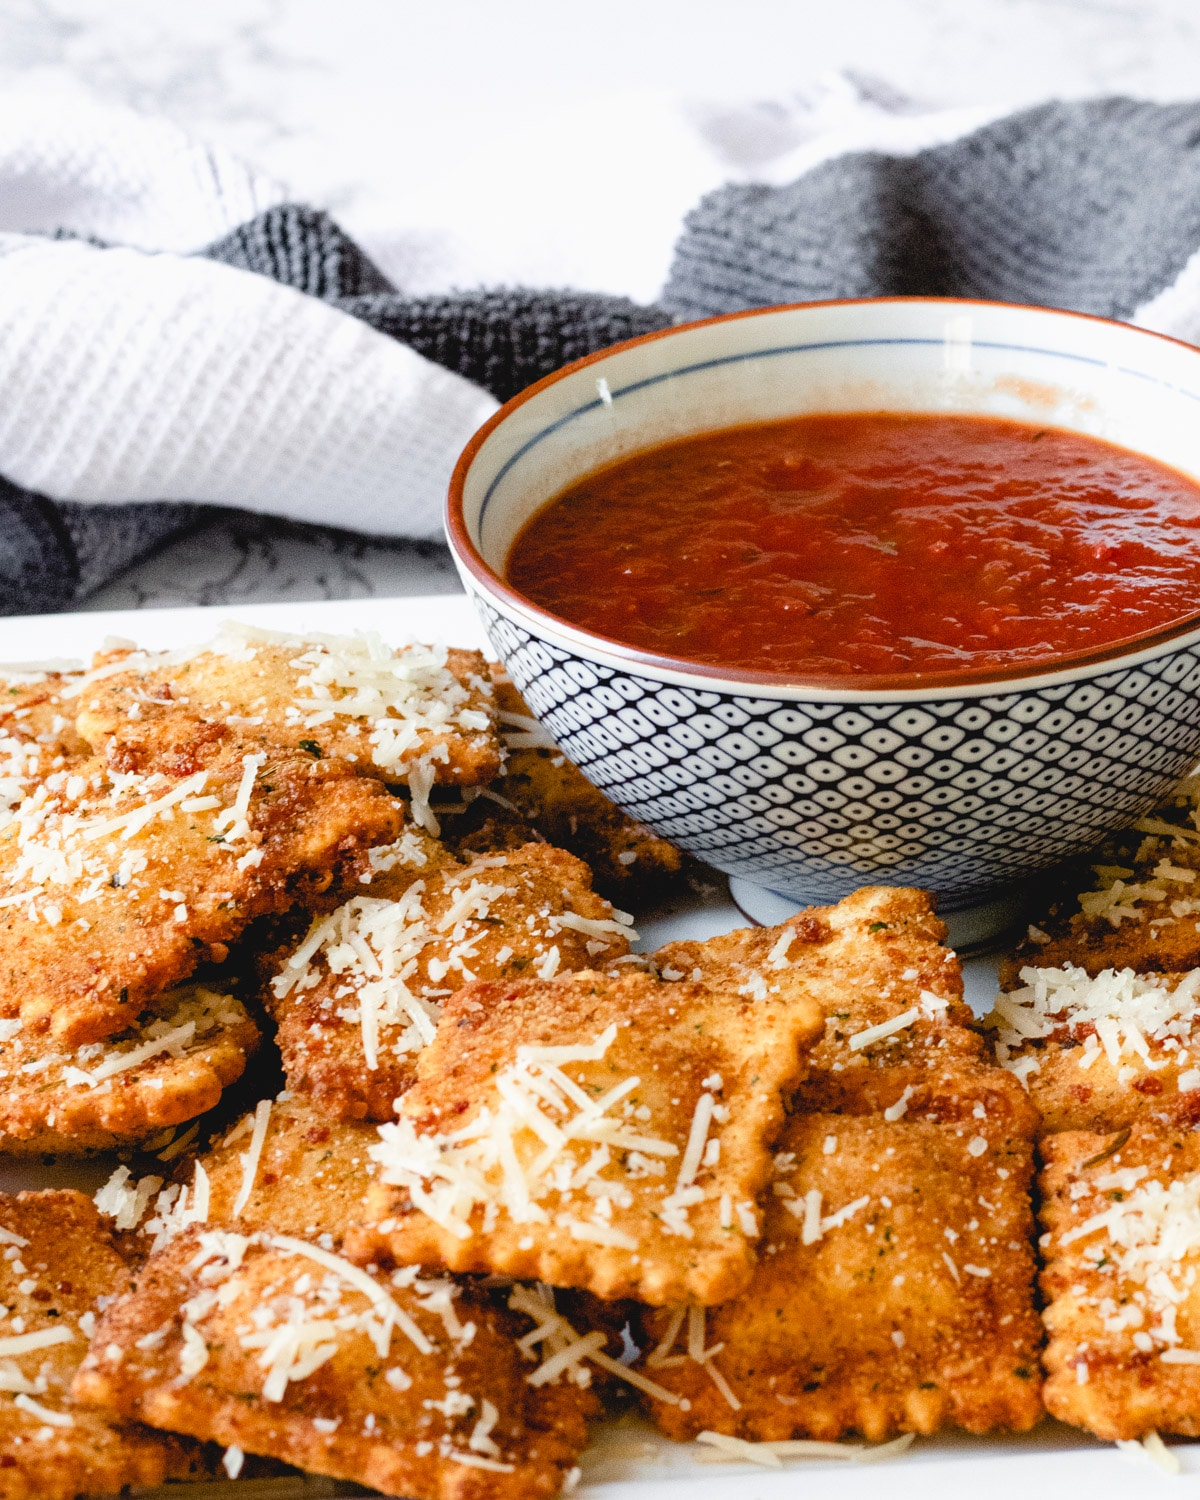 Plate of toasted ravioli that has been sprinkled with Parmesan cheese, and a bowl of marinara sauce.